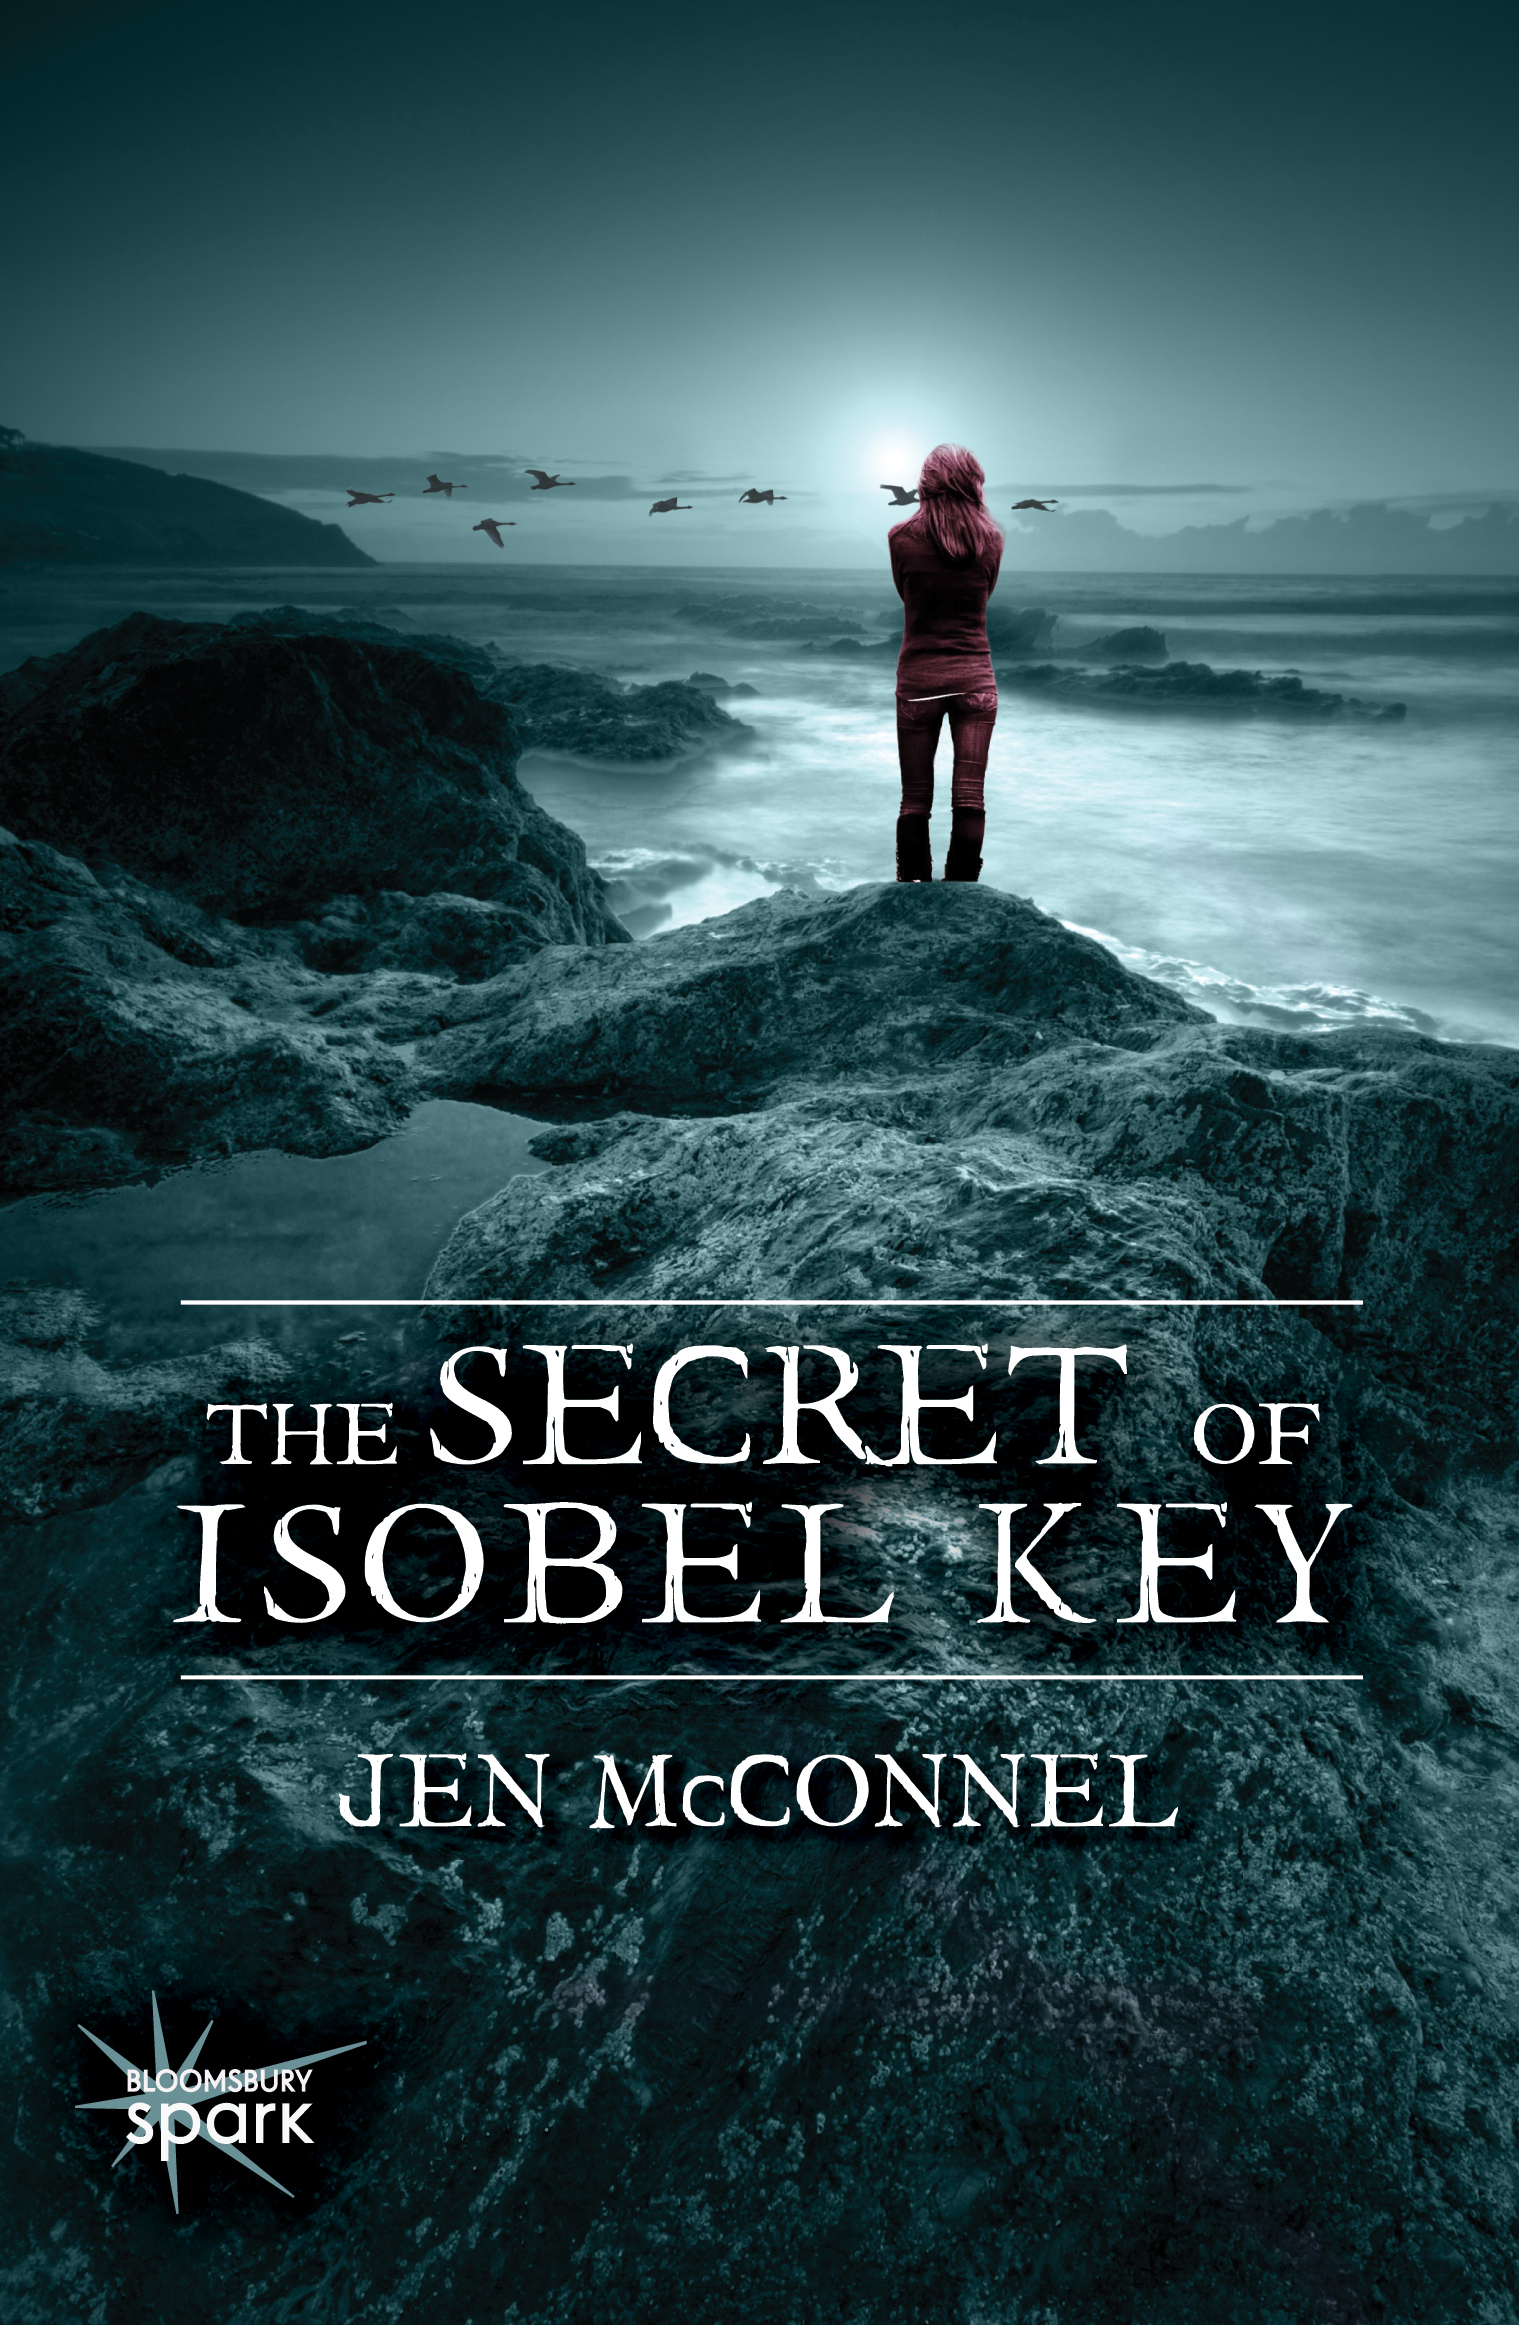 The Secret of Isobel Key